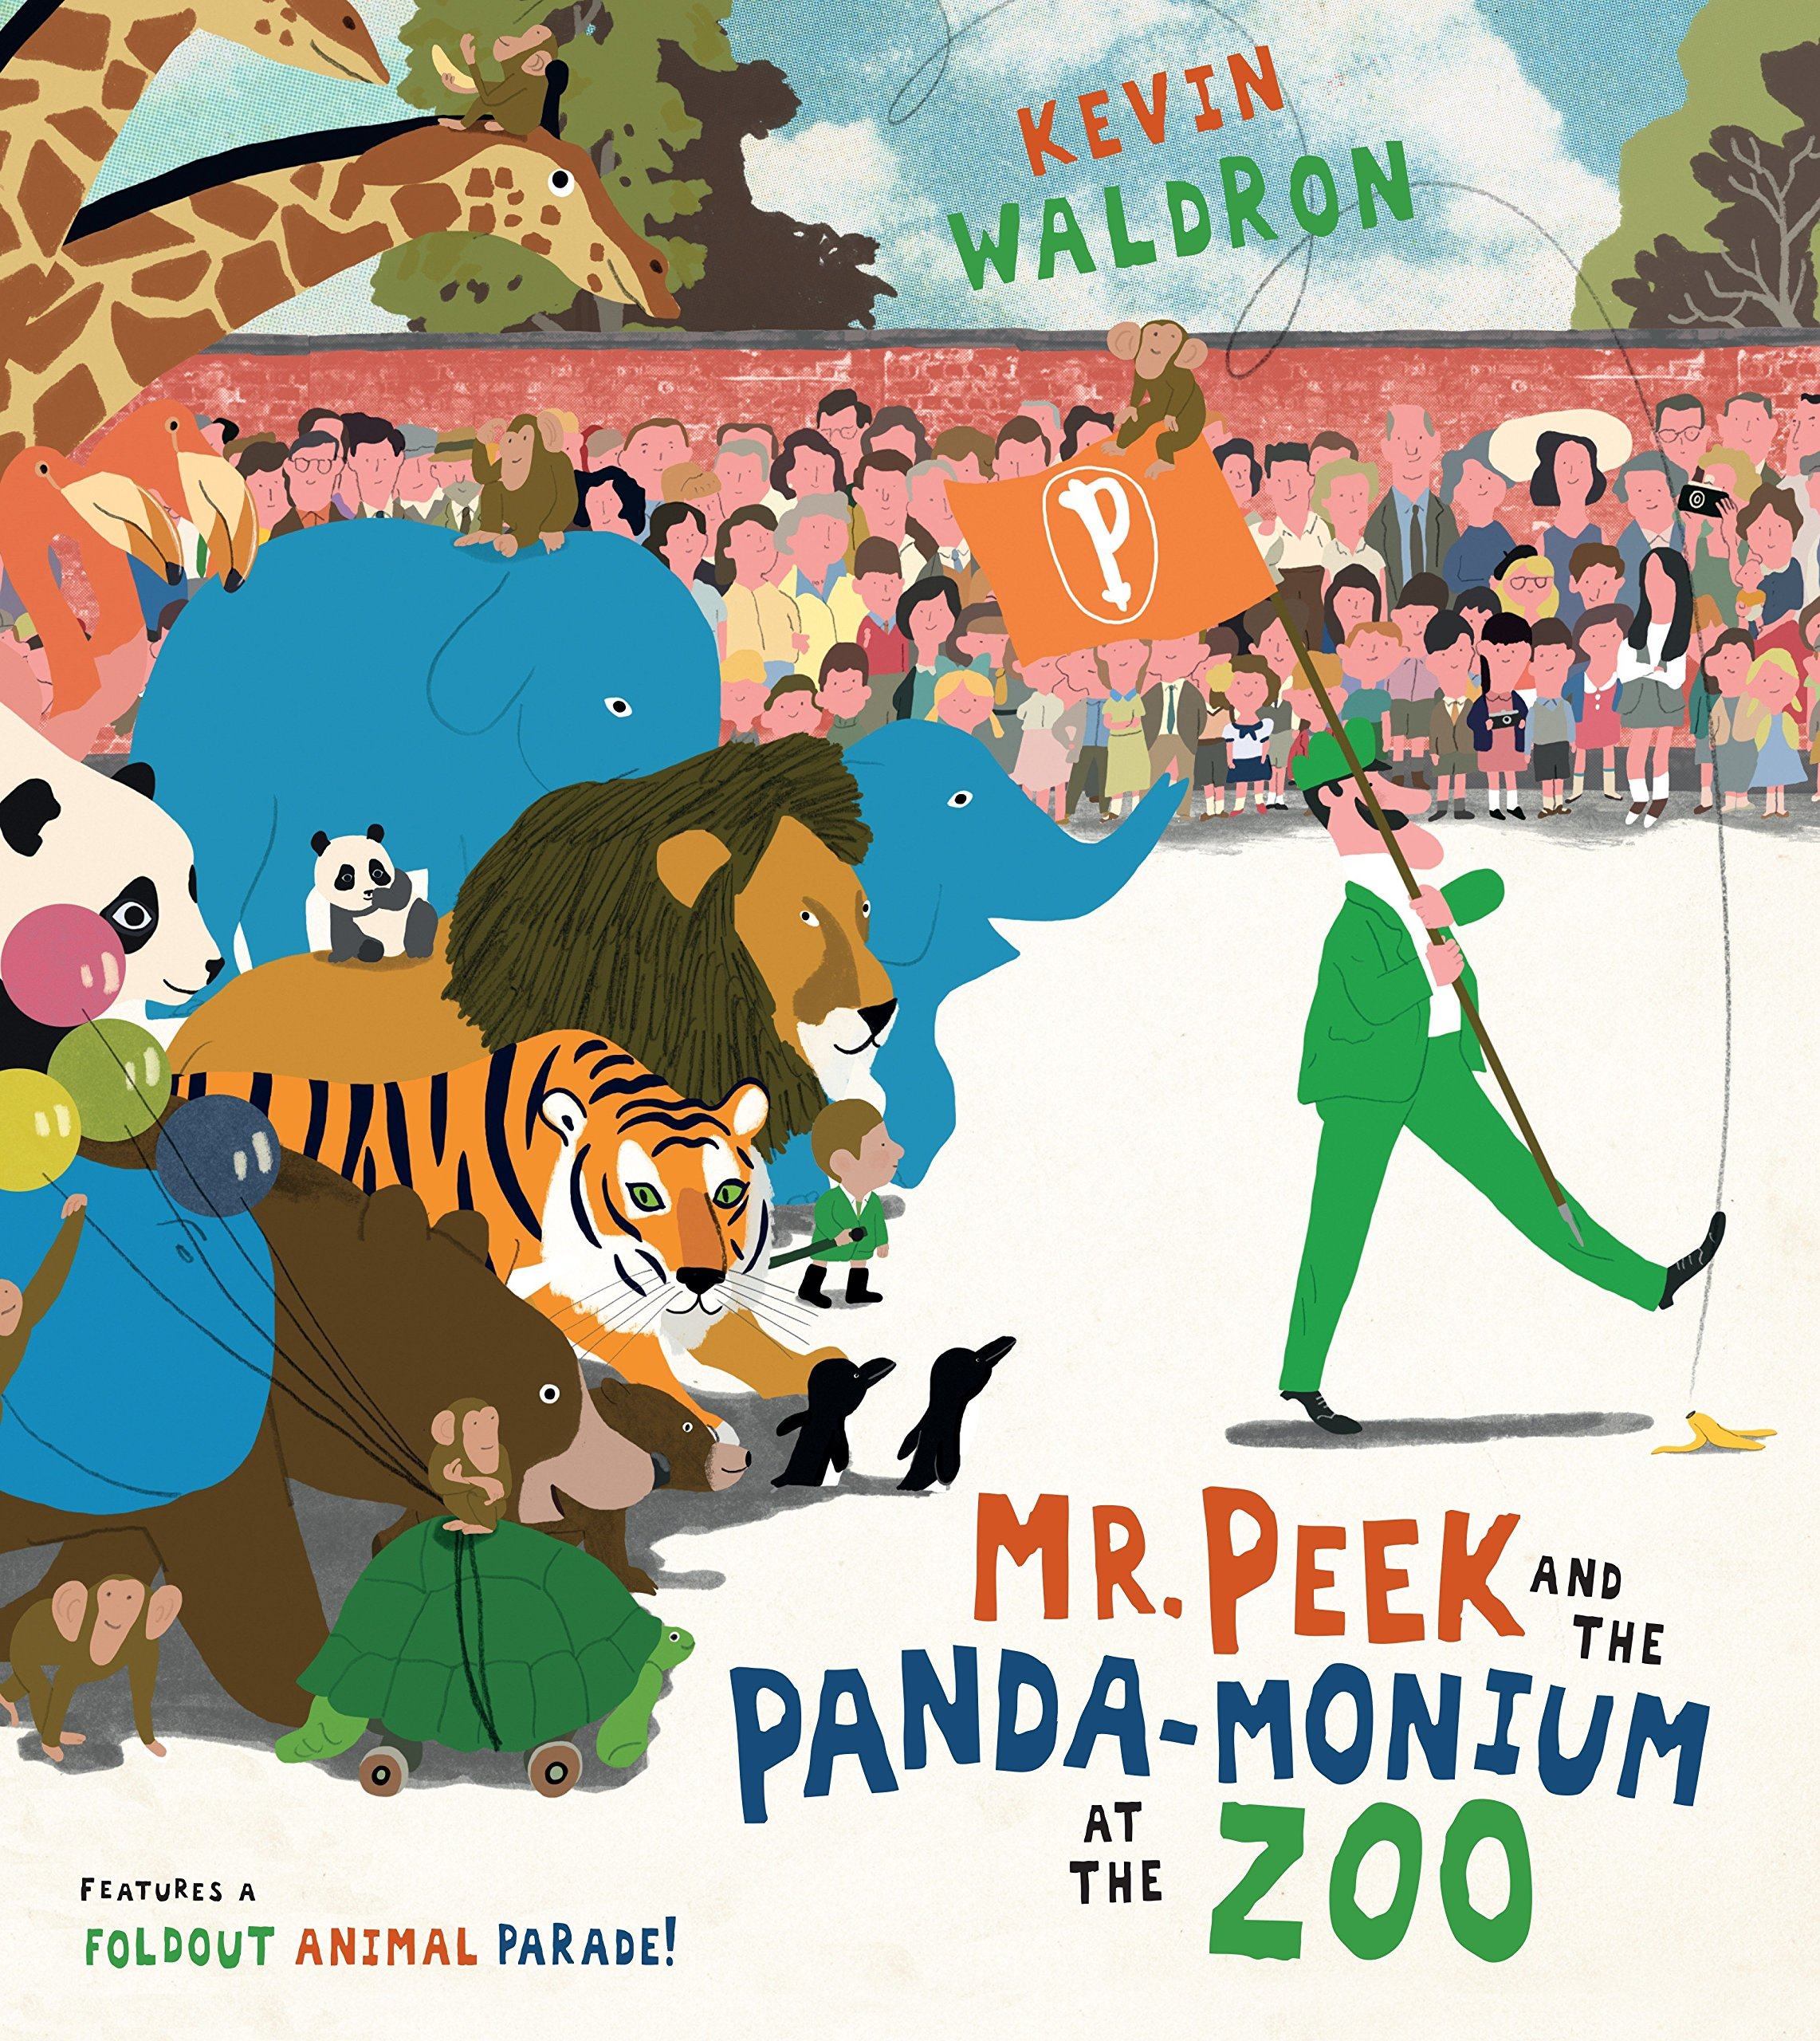 Panda-monium at Peek Zoo